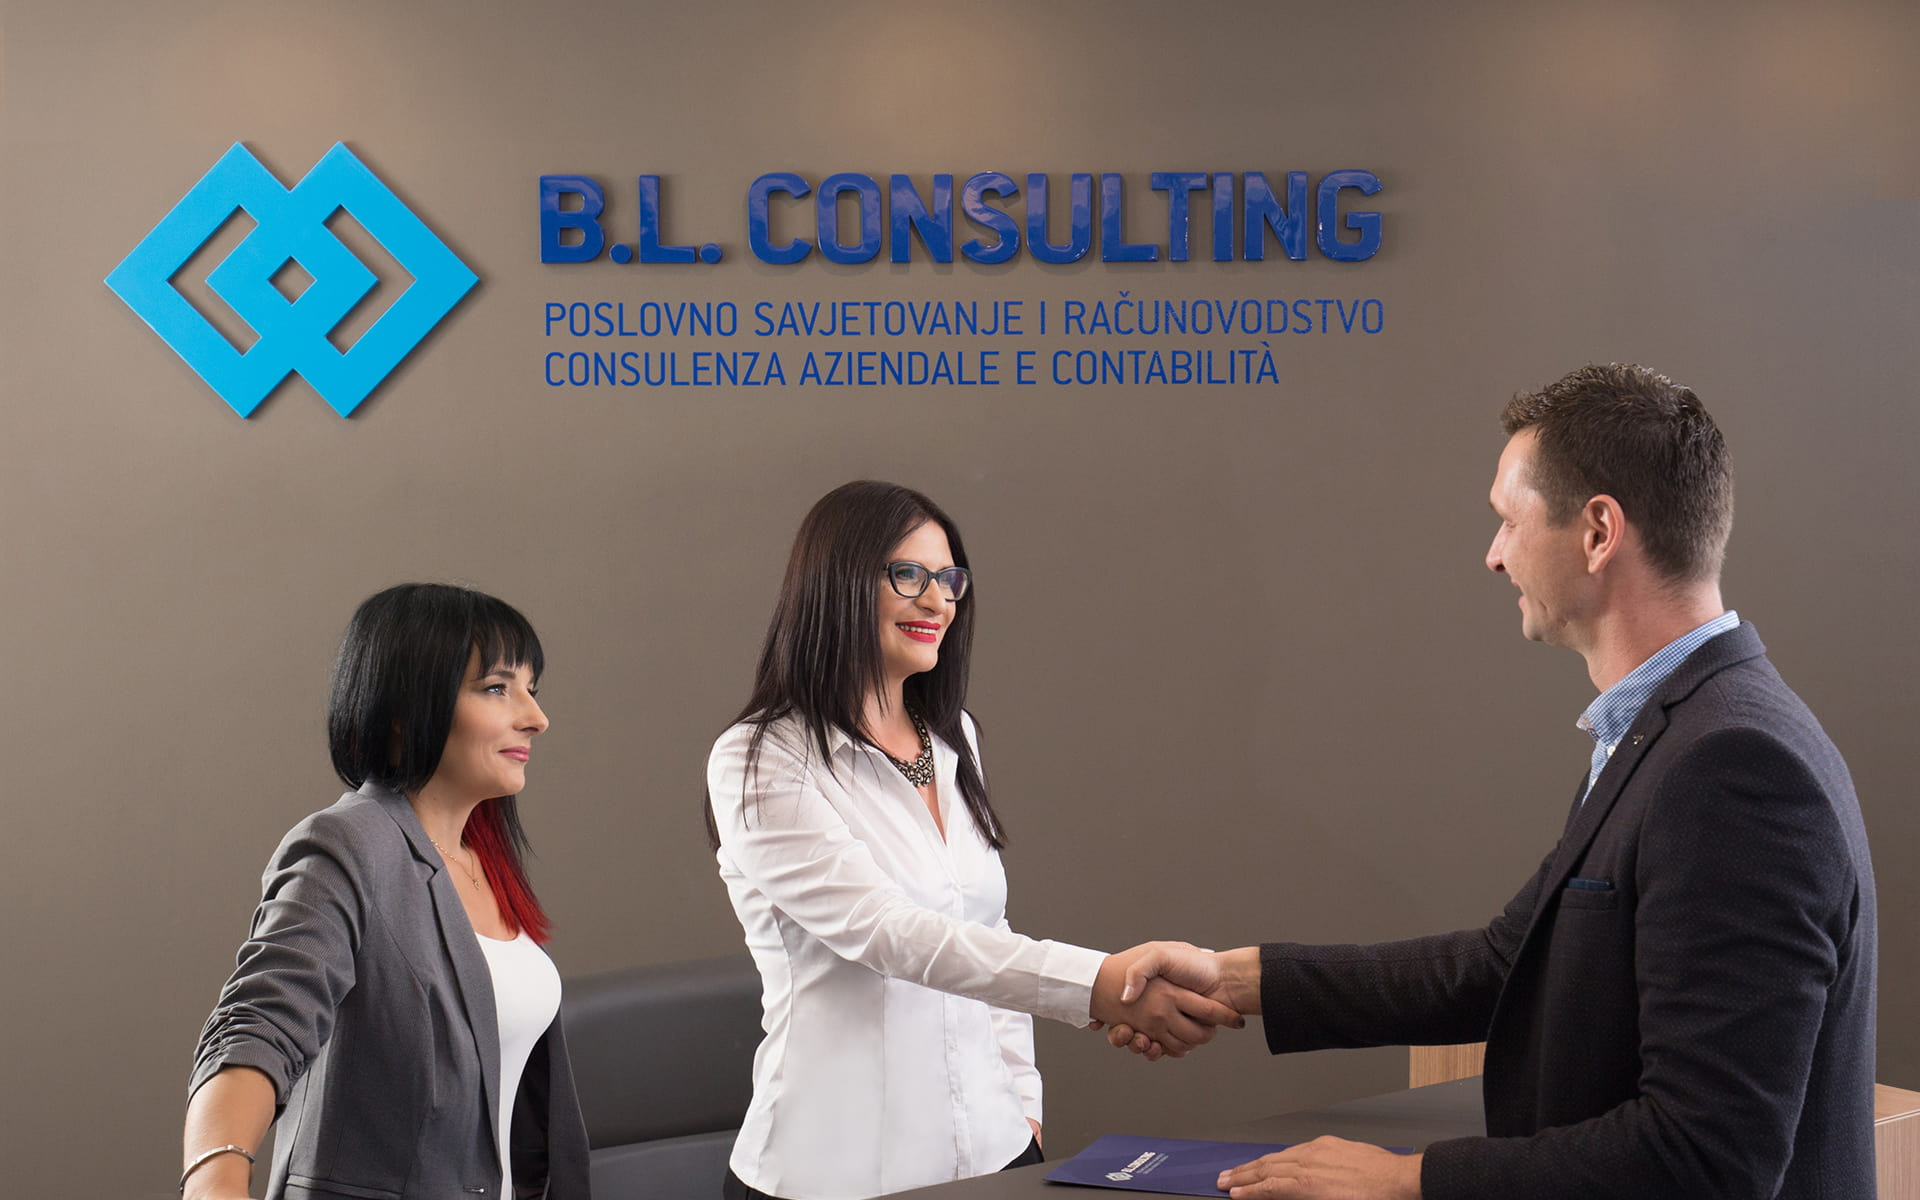 bl-consulting-welcome_4_min1